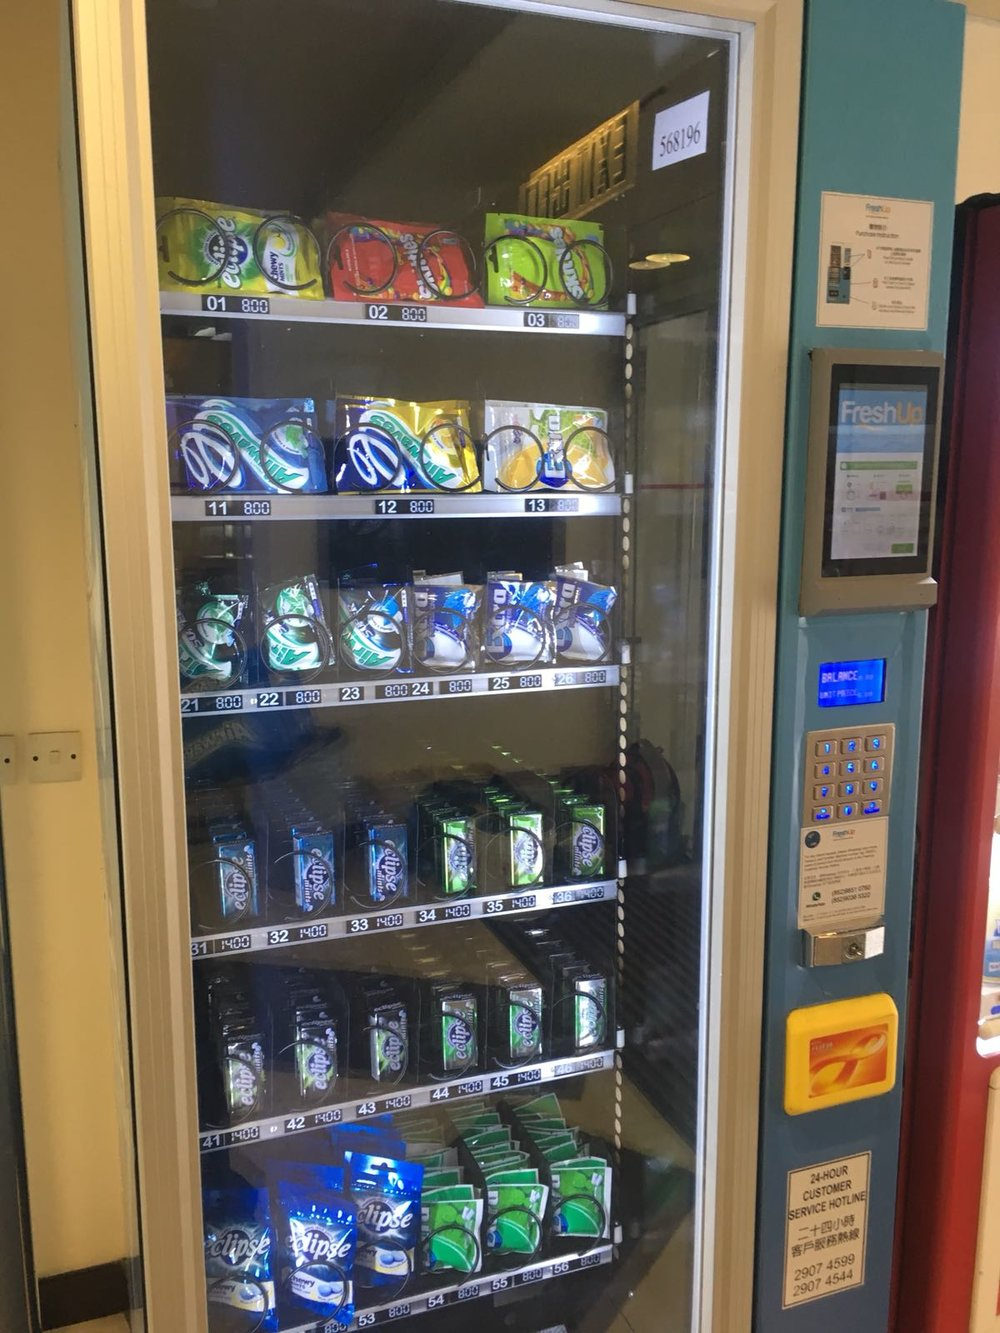 Freshup, vending machine hk, interactive, food, beverage, smart retail, convenient, vending services, professional, universities, CUHK,college